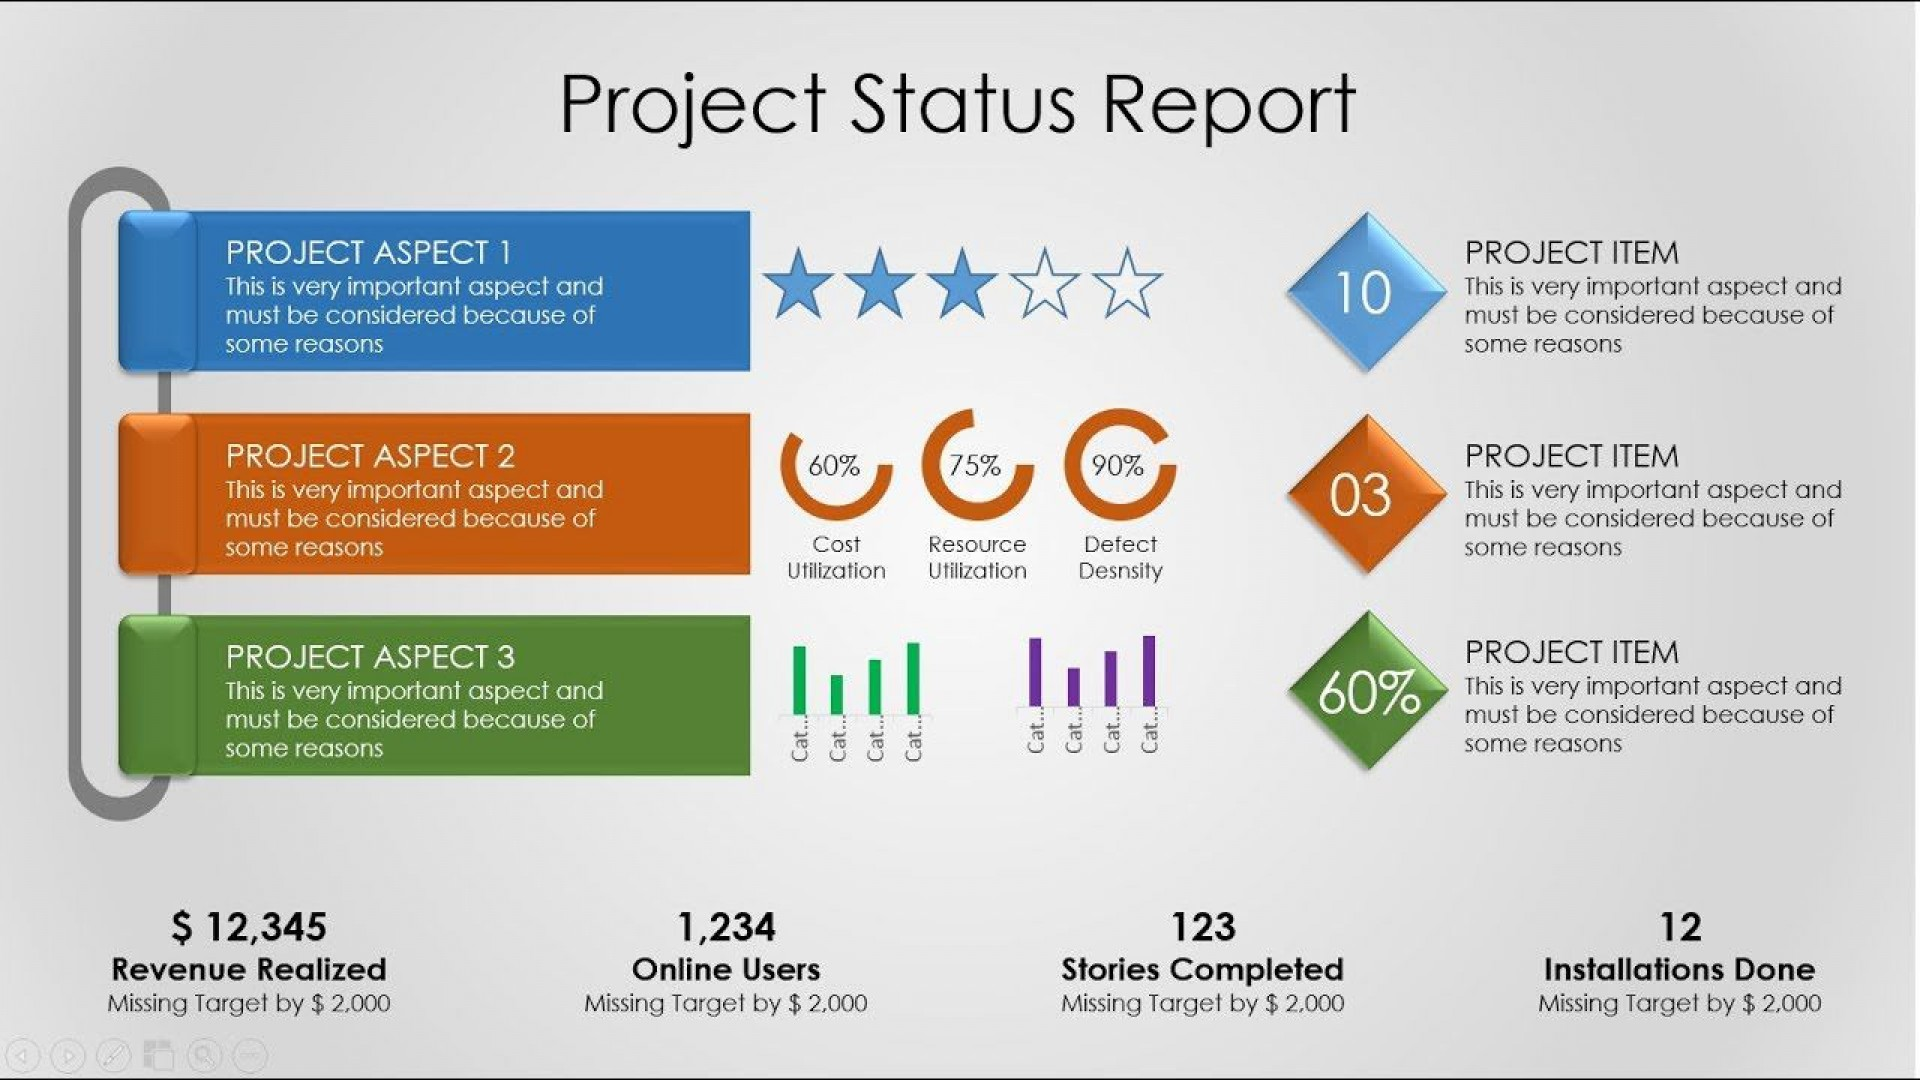 001 Surprising Project Management Statu Report Template Free Highest Quality  Excel Weekly Word1920